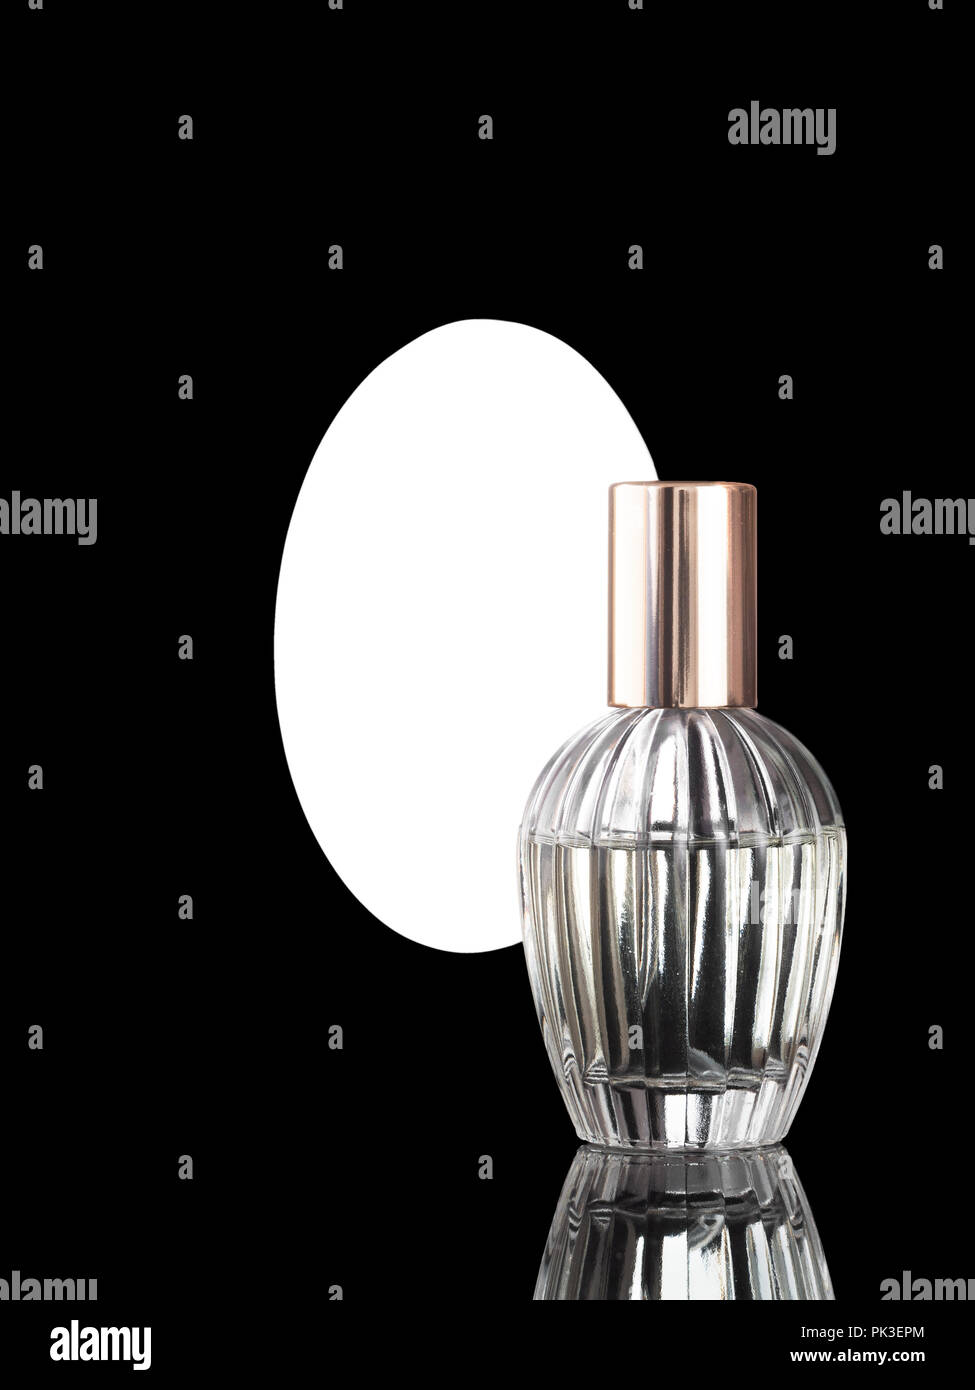 Elegant perfume bottle on shiny black background with mirror behind and copyspace. - Stock Image